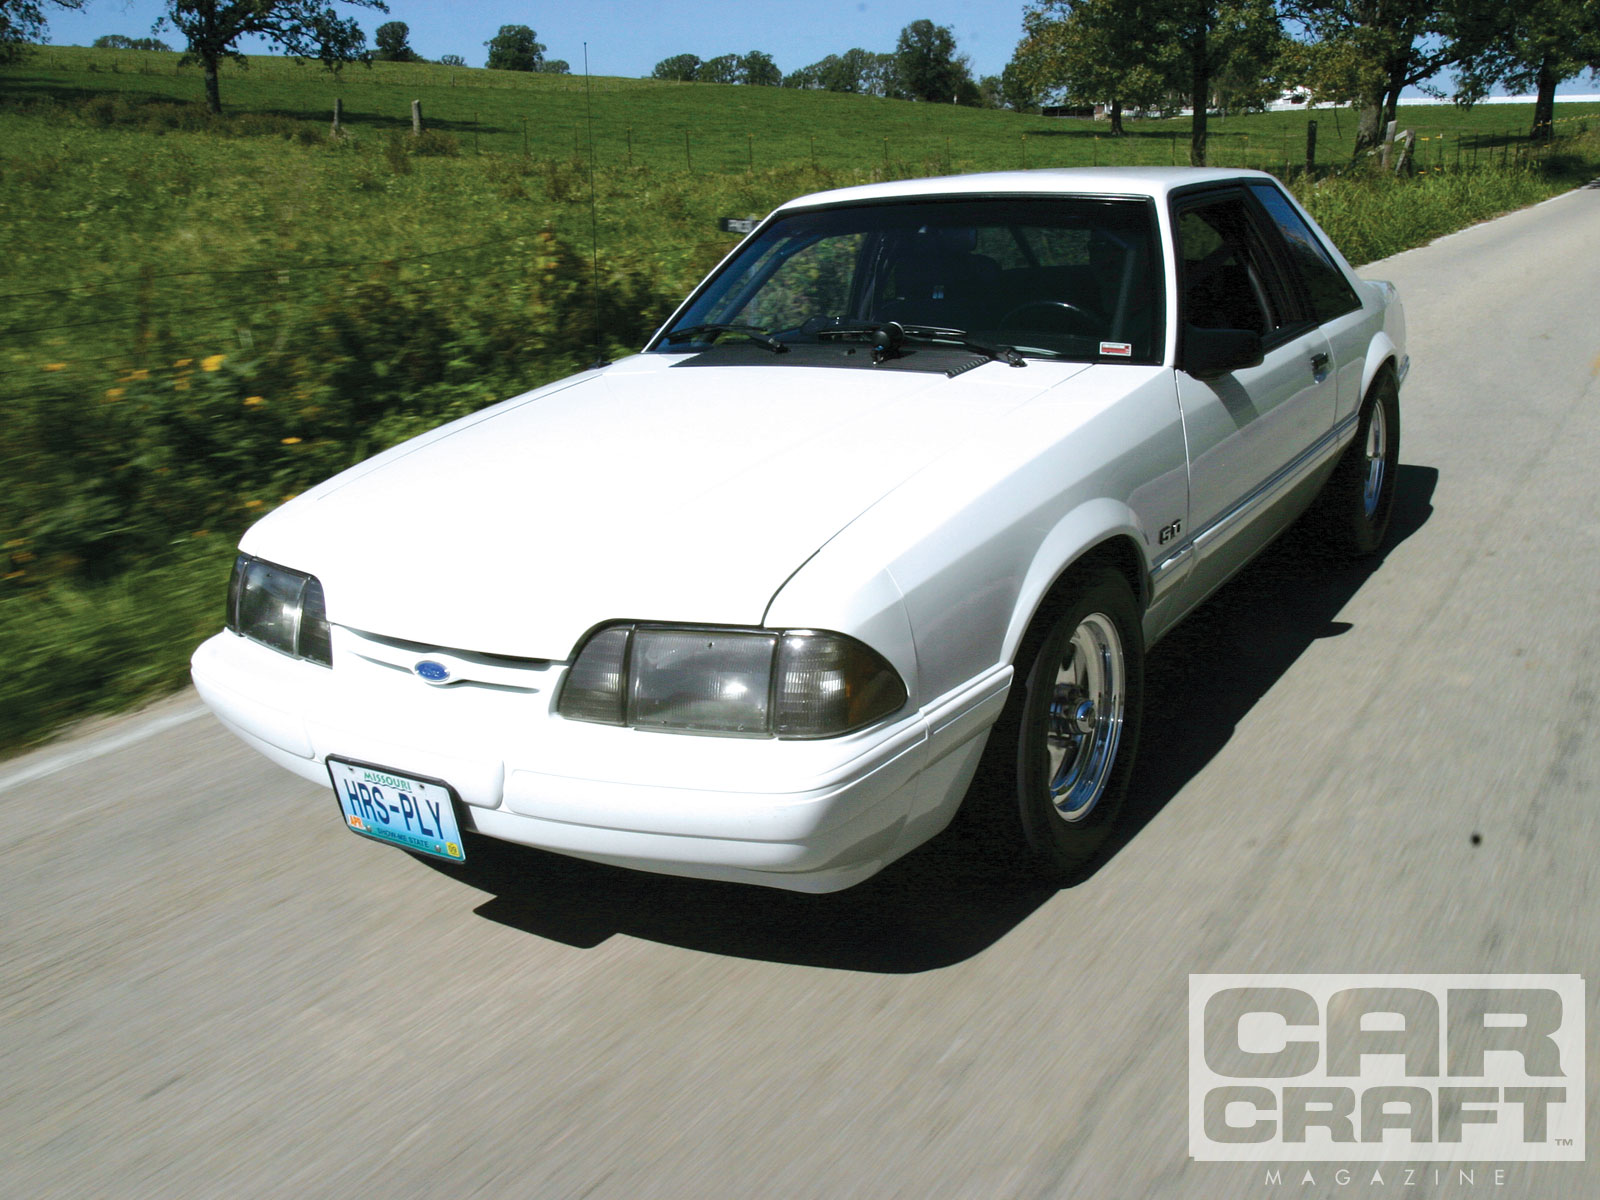 1992 Ford Mustang wallpapers, Vehicles, HQ 1992 Ford Mustang